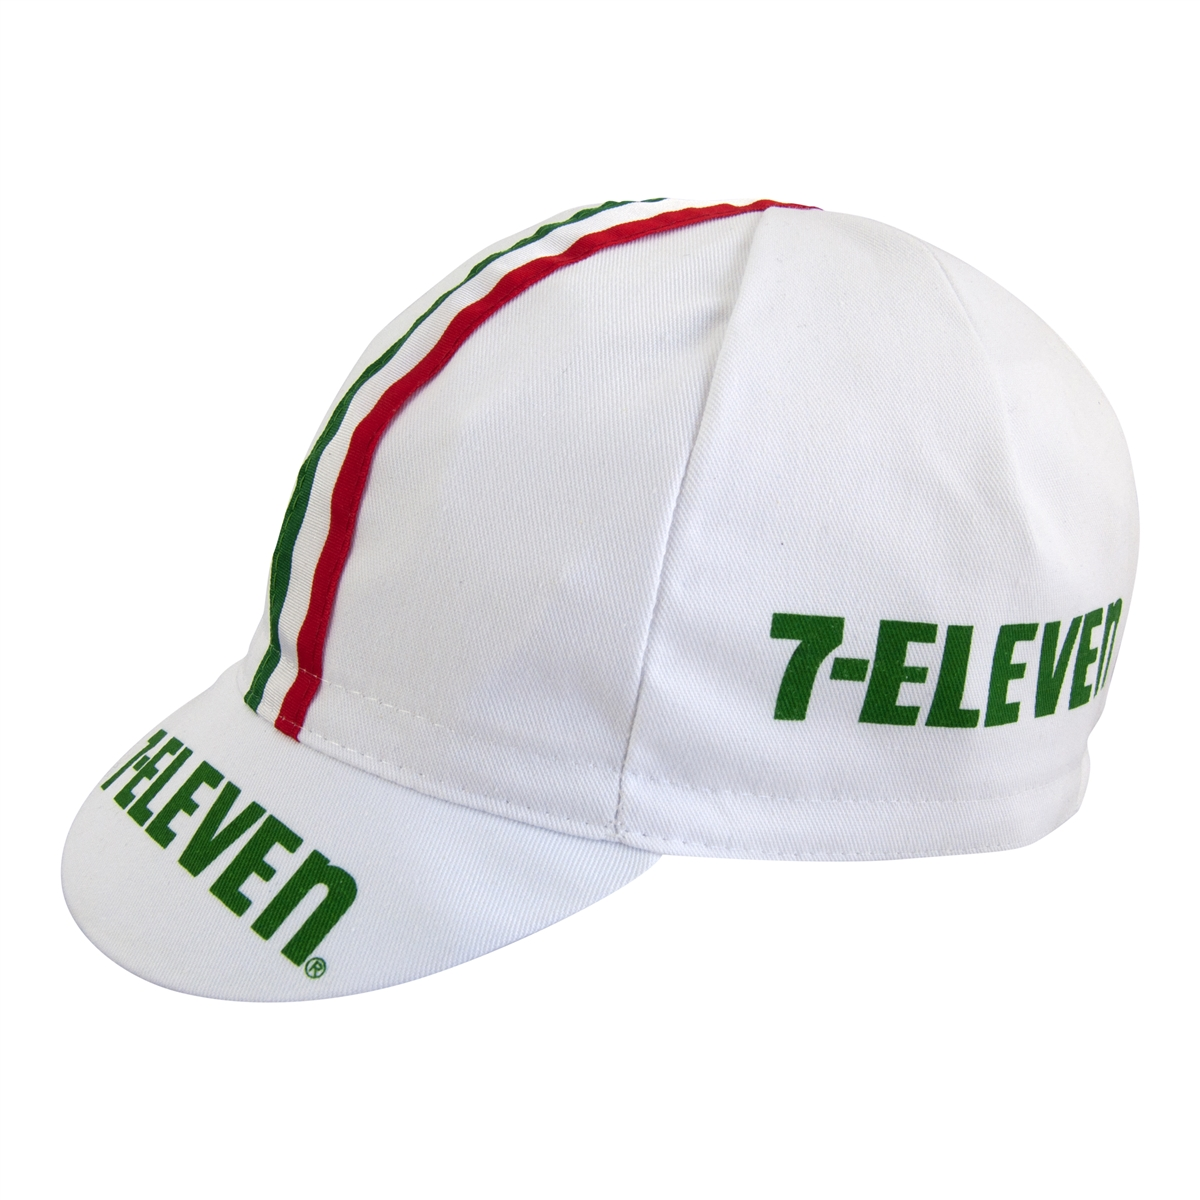 7-Eleven Retro Pro Team Cycling Cap 29d34d650